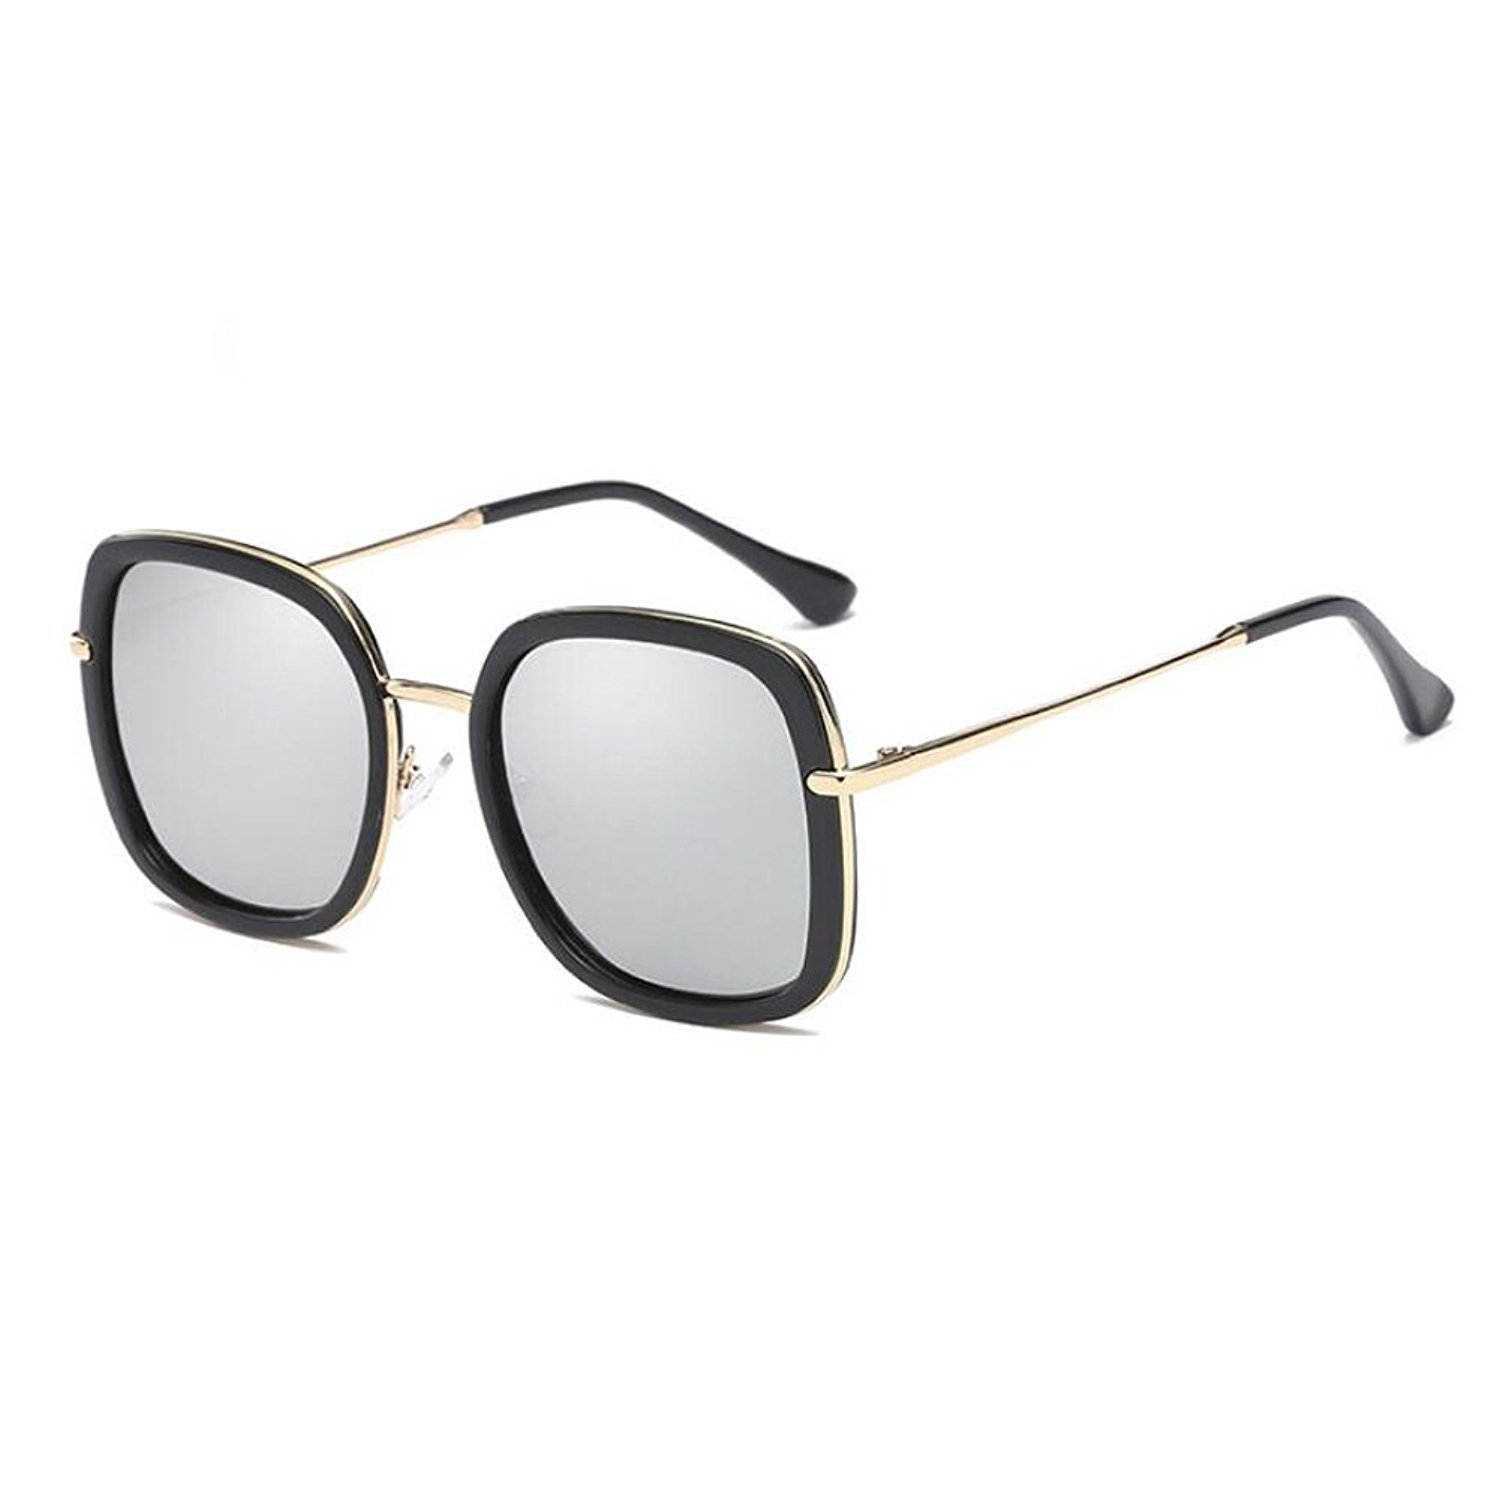 579e4bef73 Get Quotations · GAMT Polarized Wayfare Sunglasses With Square Fram Metal  Arm Mirror Lens For Men And Women Fashionable